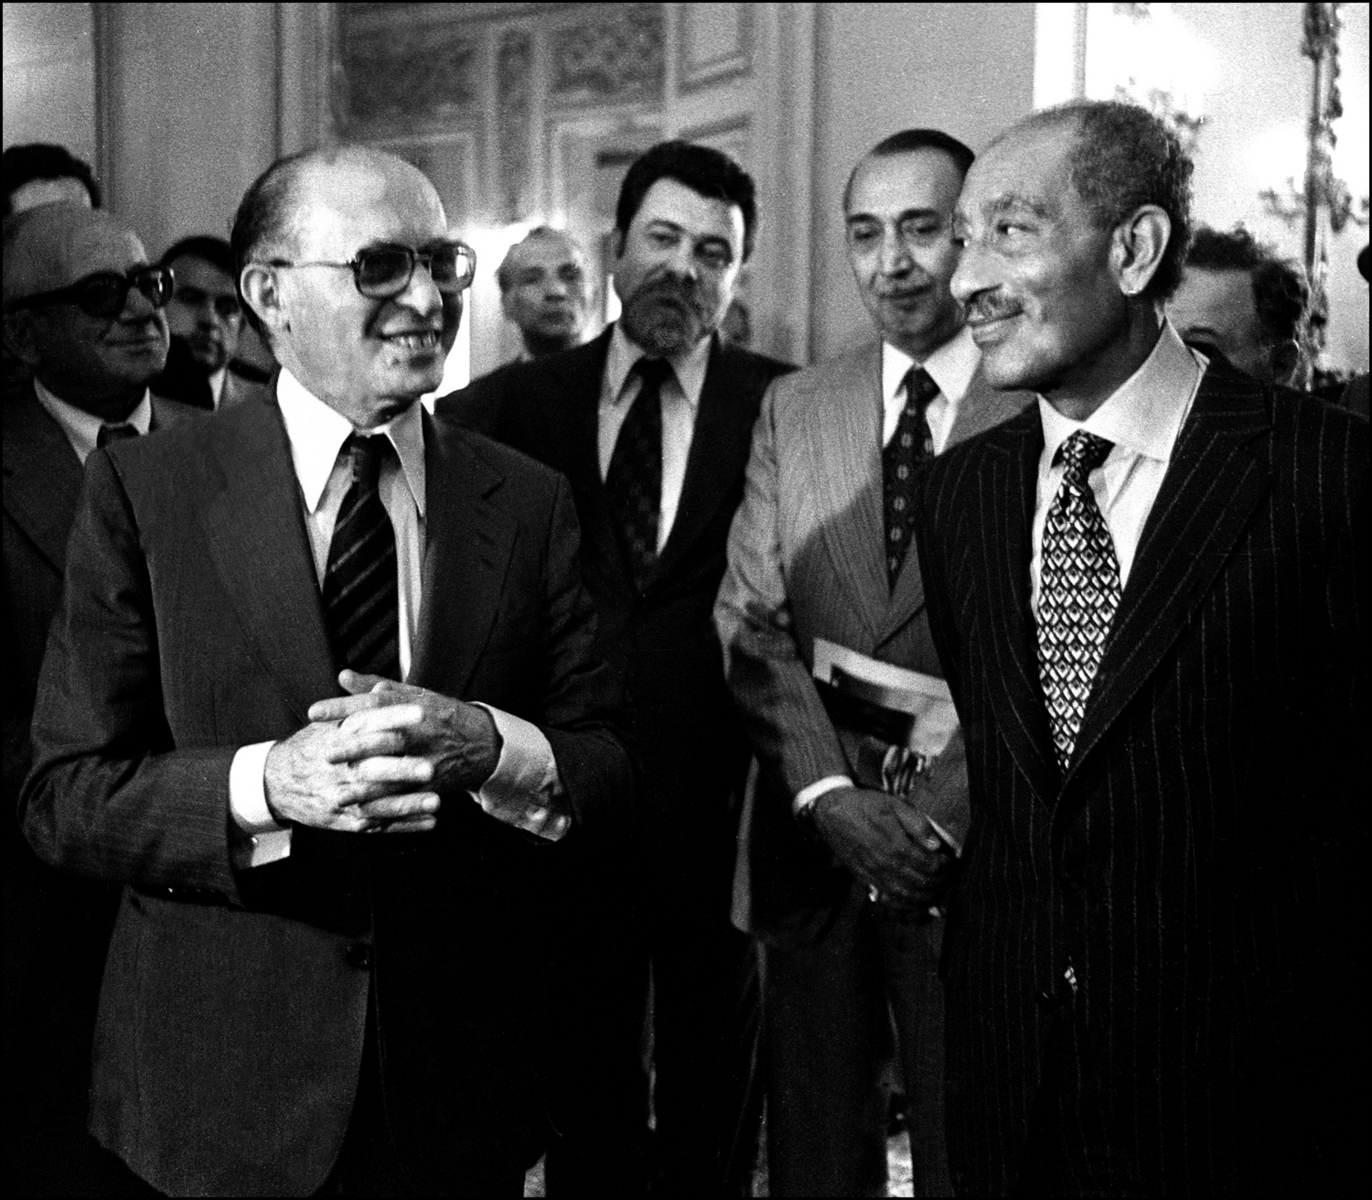 Sadat and Begin are all smiles at the end of their press conference. : Sadat-Mubarak 1978-1981 : BILL FOLEY